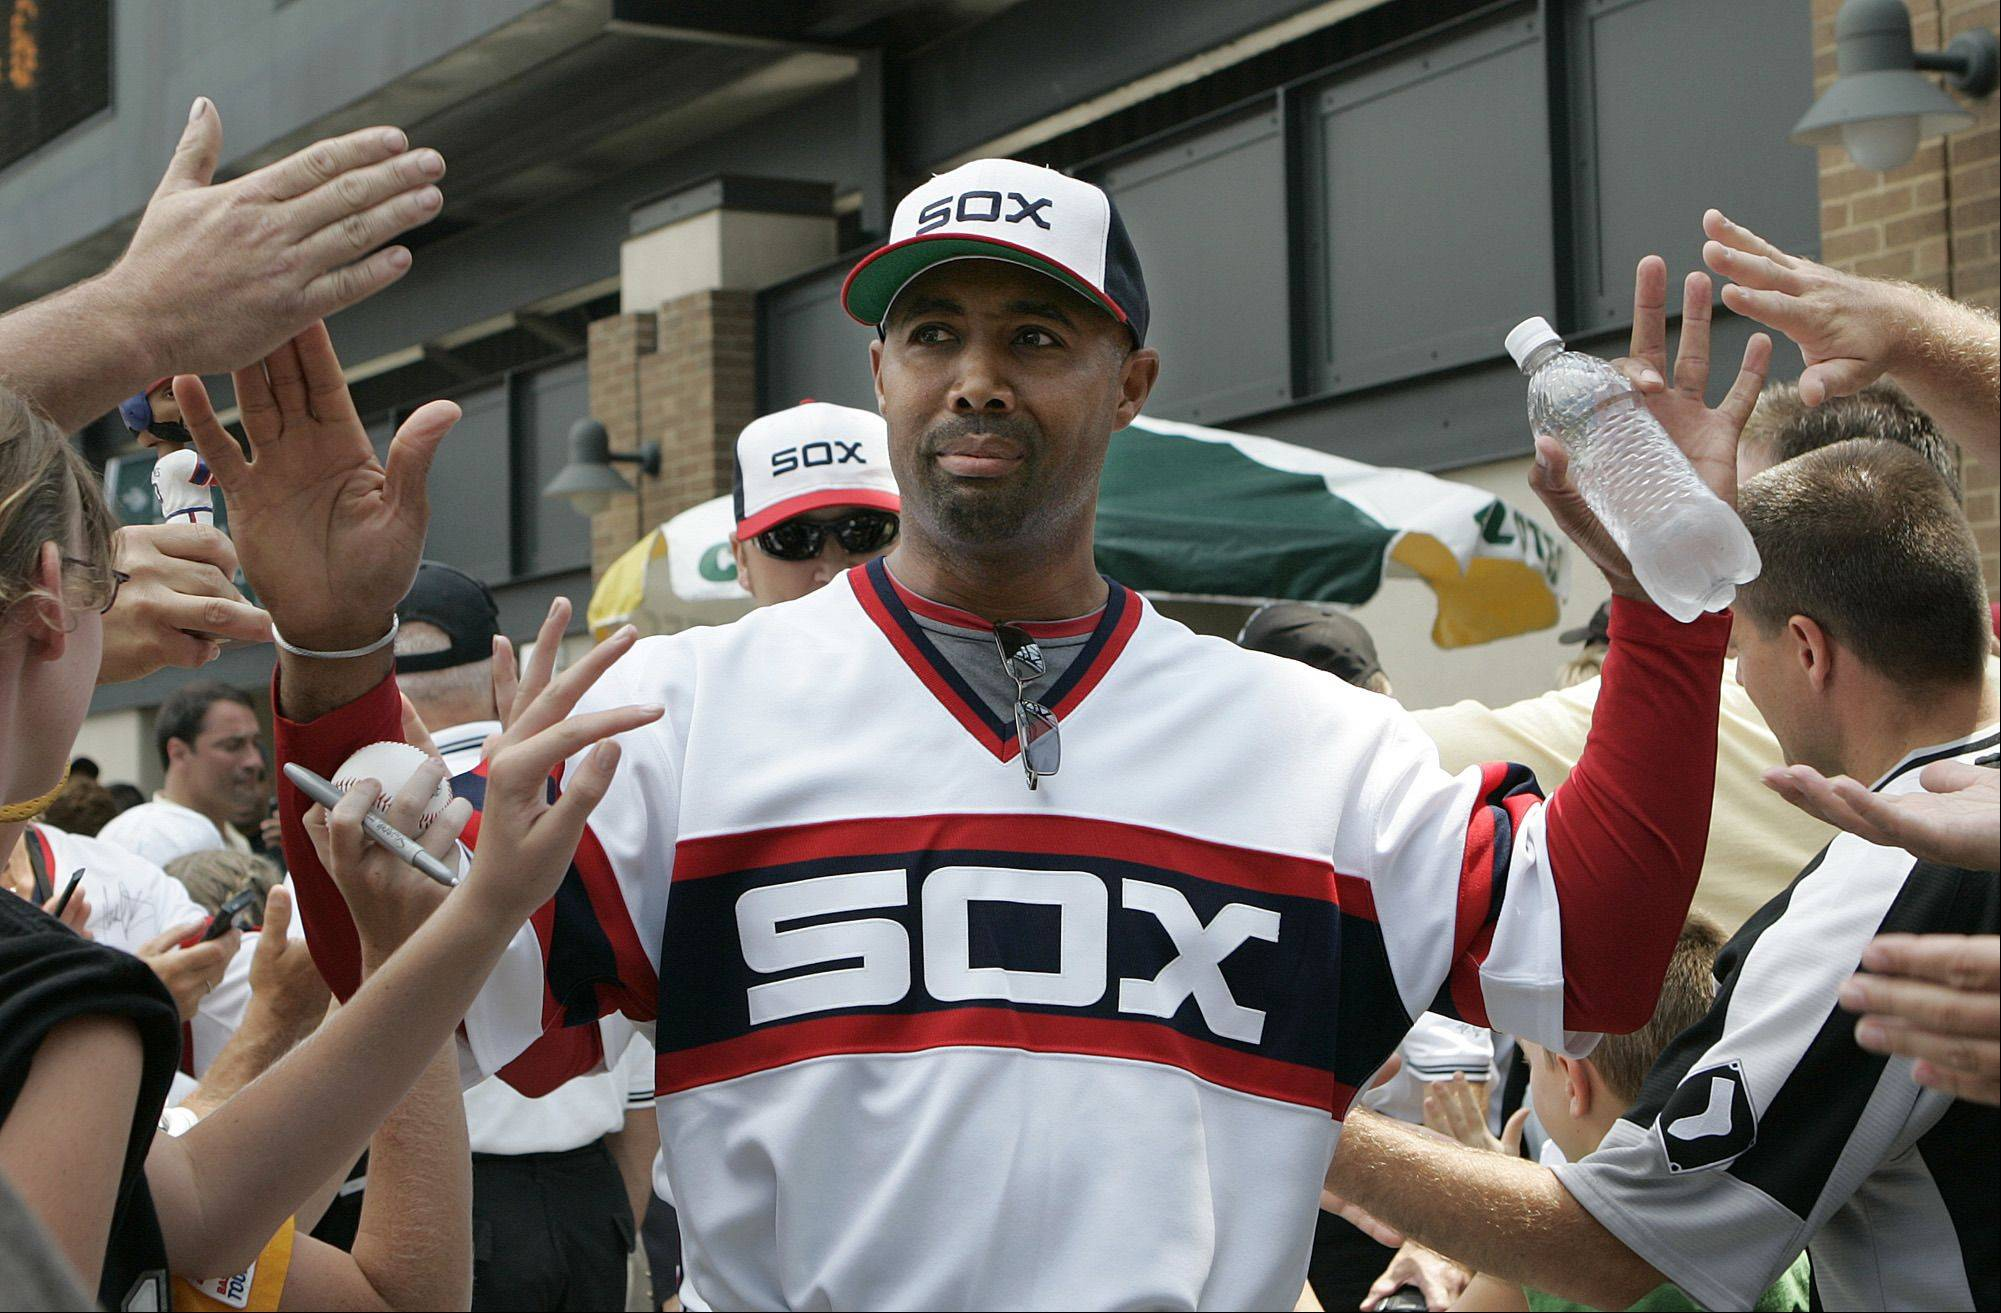 The White Sox are hoping Harold Baines can help get more out of players such as Adam Dunn, Tyler Flowers and David Beckham.